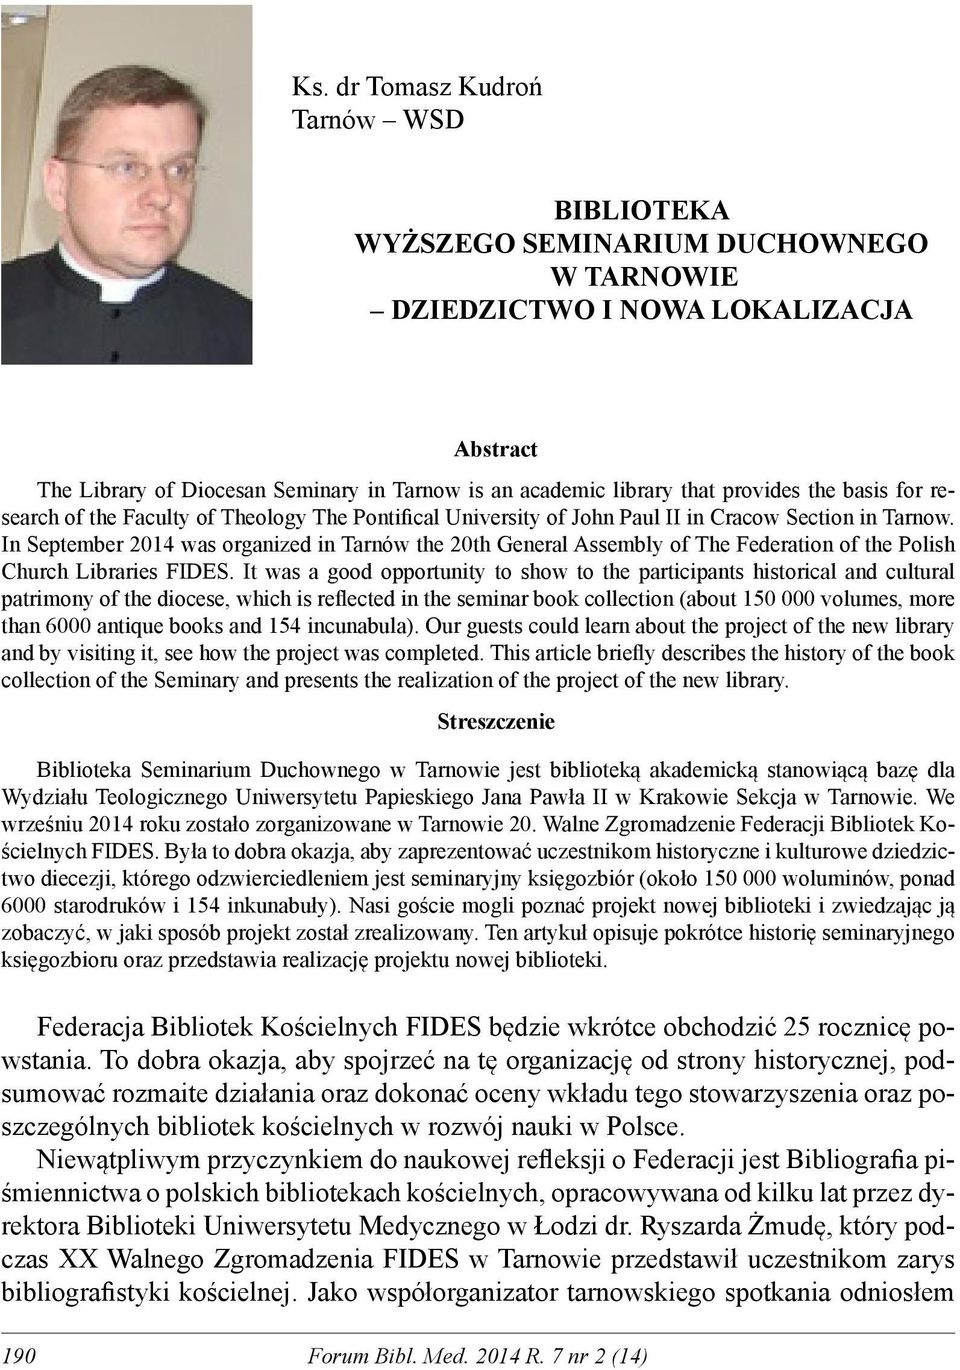 In September 2014 was organized in Tarnów the 20th General Assembly of The Federation of the Polish Church Libraries FIDES.